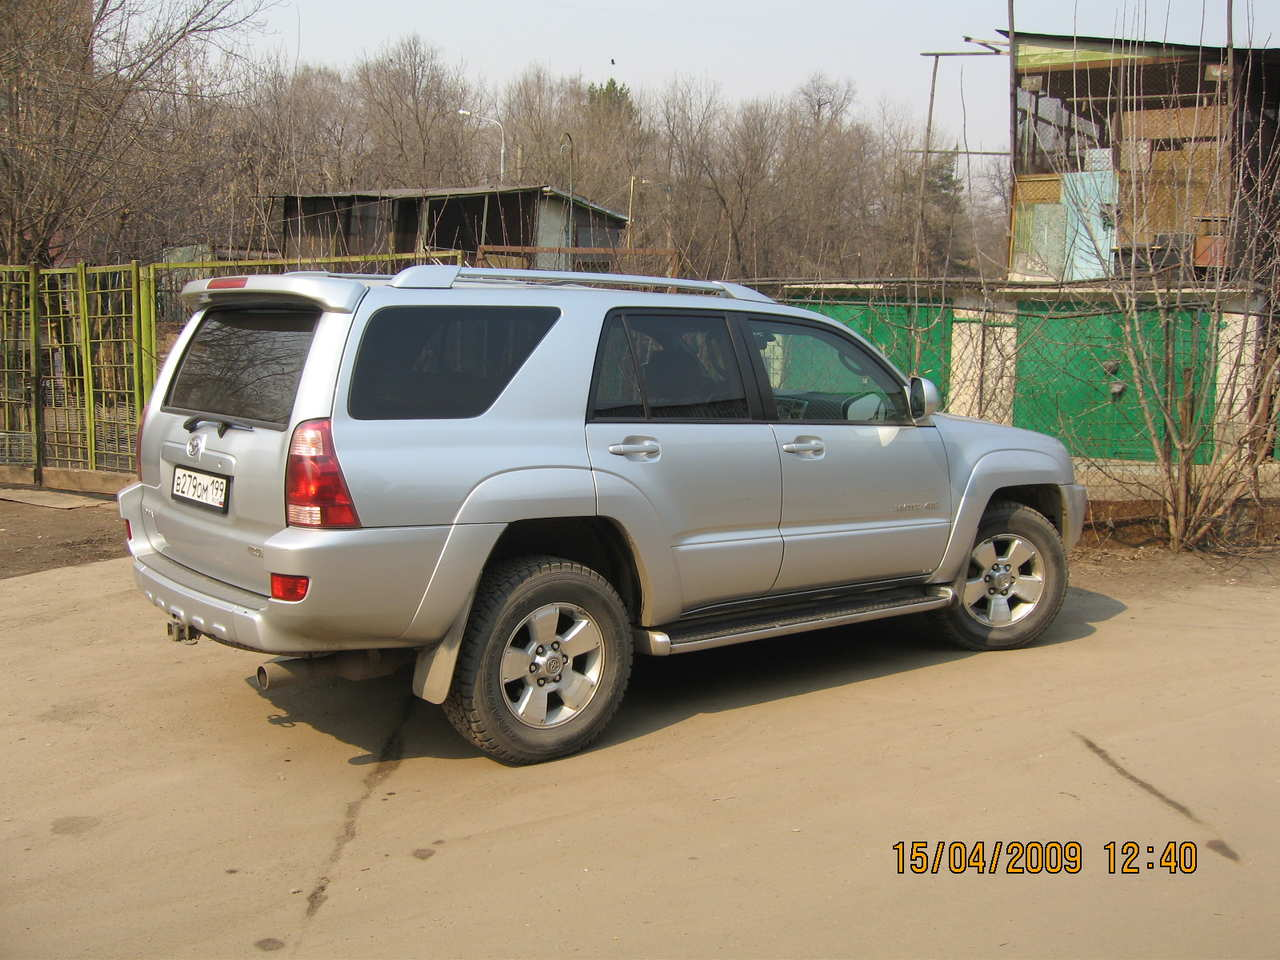 2004 toyota 4runner images 3995cc gasoline automatic for sale. Black Bedroom Furniture Sets. Home Design Ideas